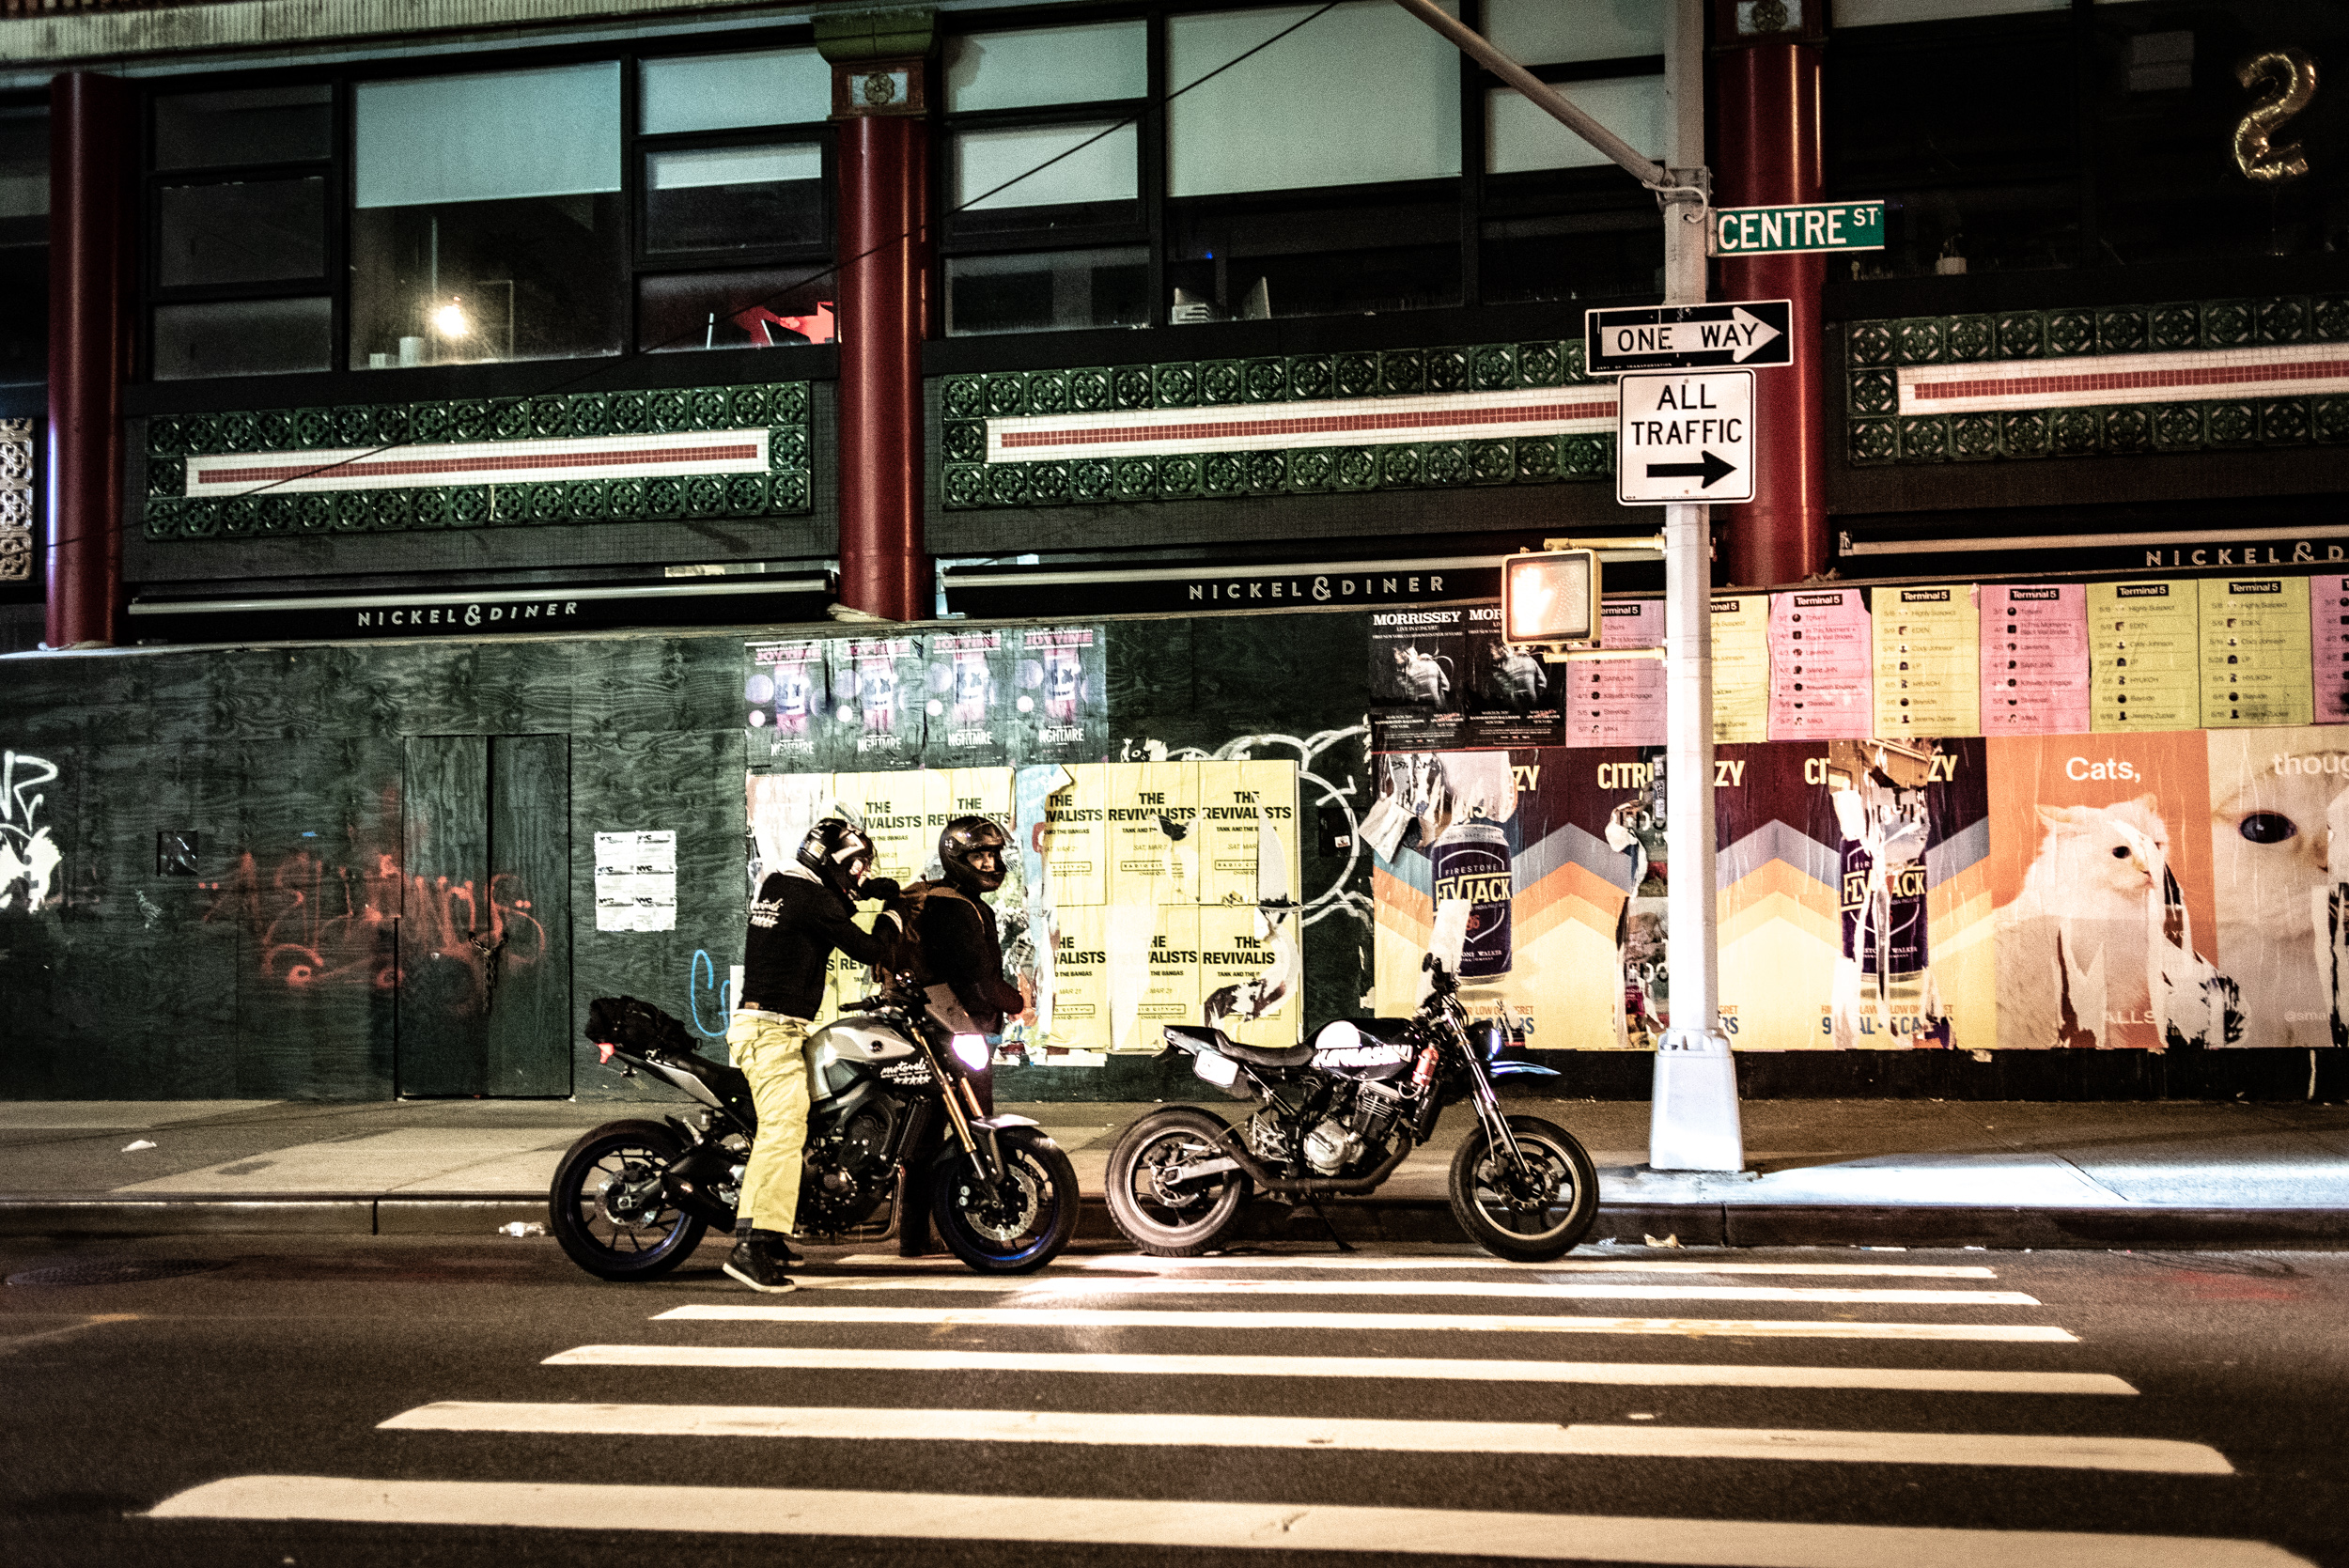 Two motorcyclists pulled over on Centre Street in Manhattan at night